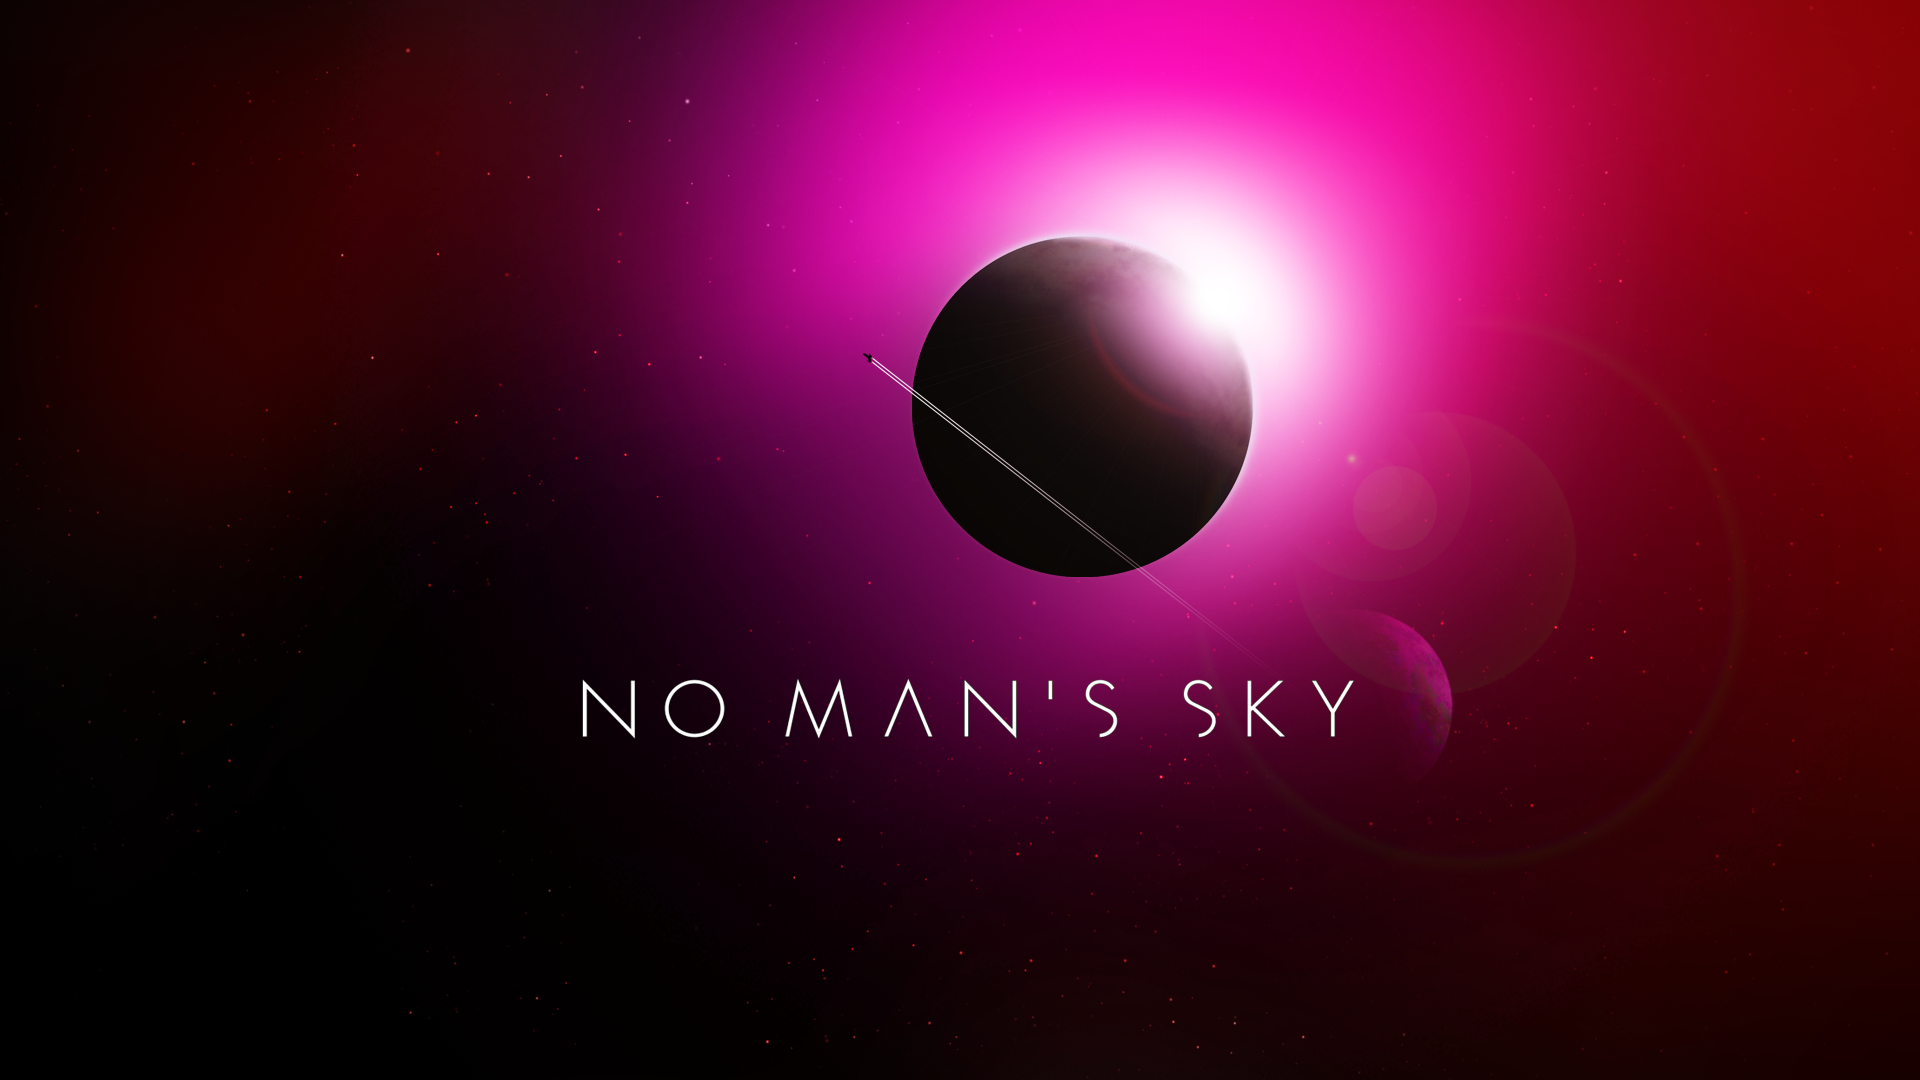 No Mans Sky Wallpaper By Rocklou On Deviantart